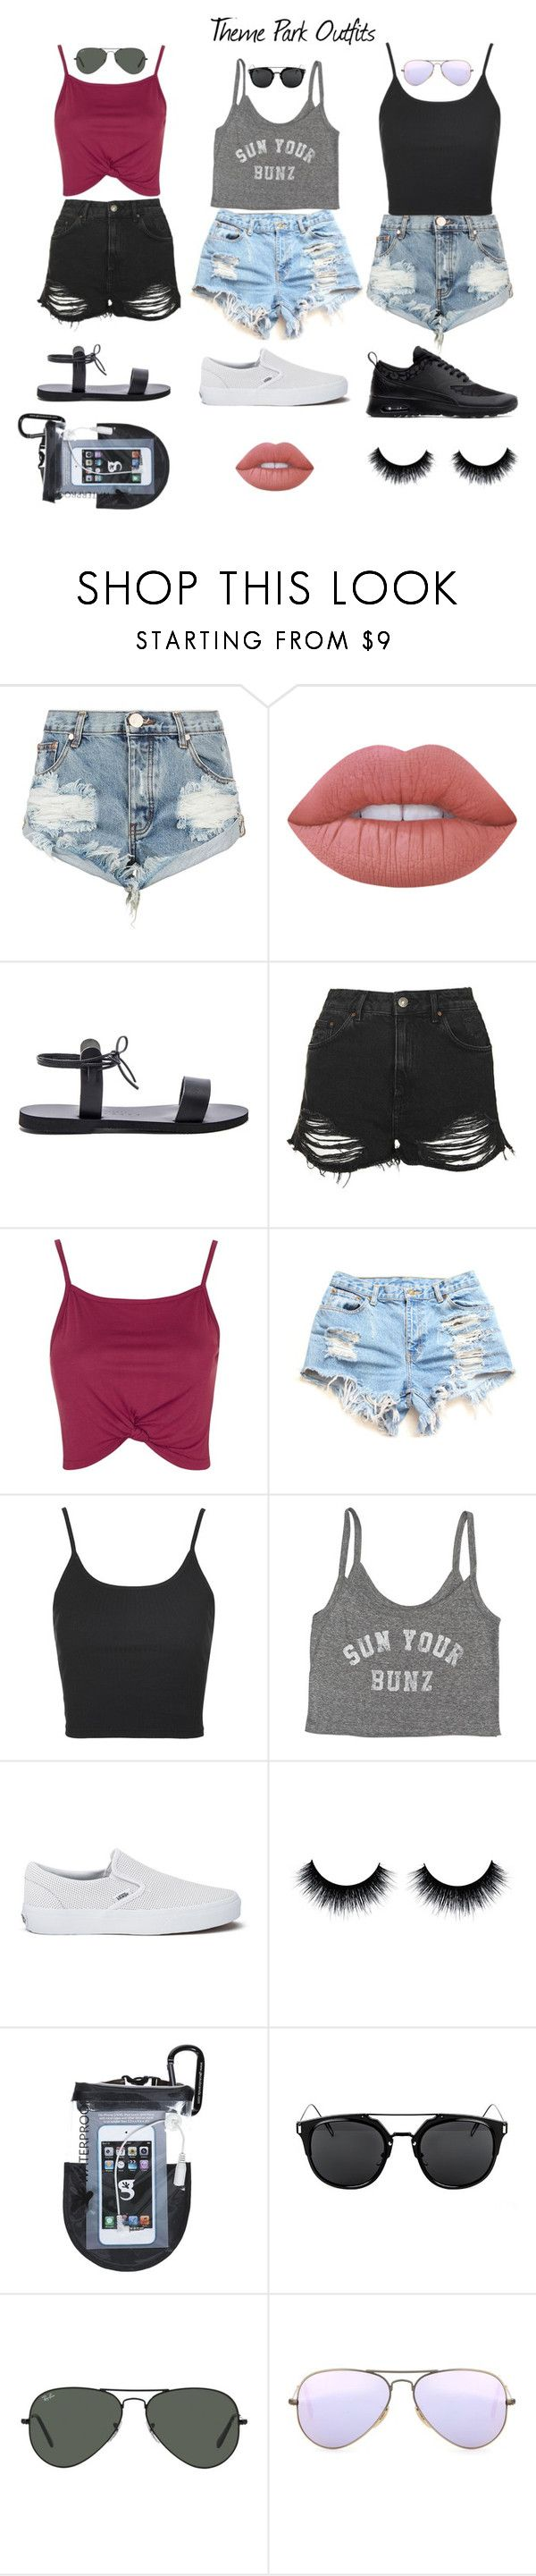 """""""Theme Park Outfits"""" by lulito on Polyvore featuring One Teaspoon, Lime Crime, Isapera, Topshop, Billabong, Vans, Ray-Ban and NIKE"""